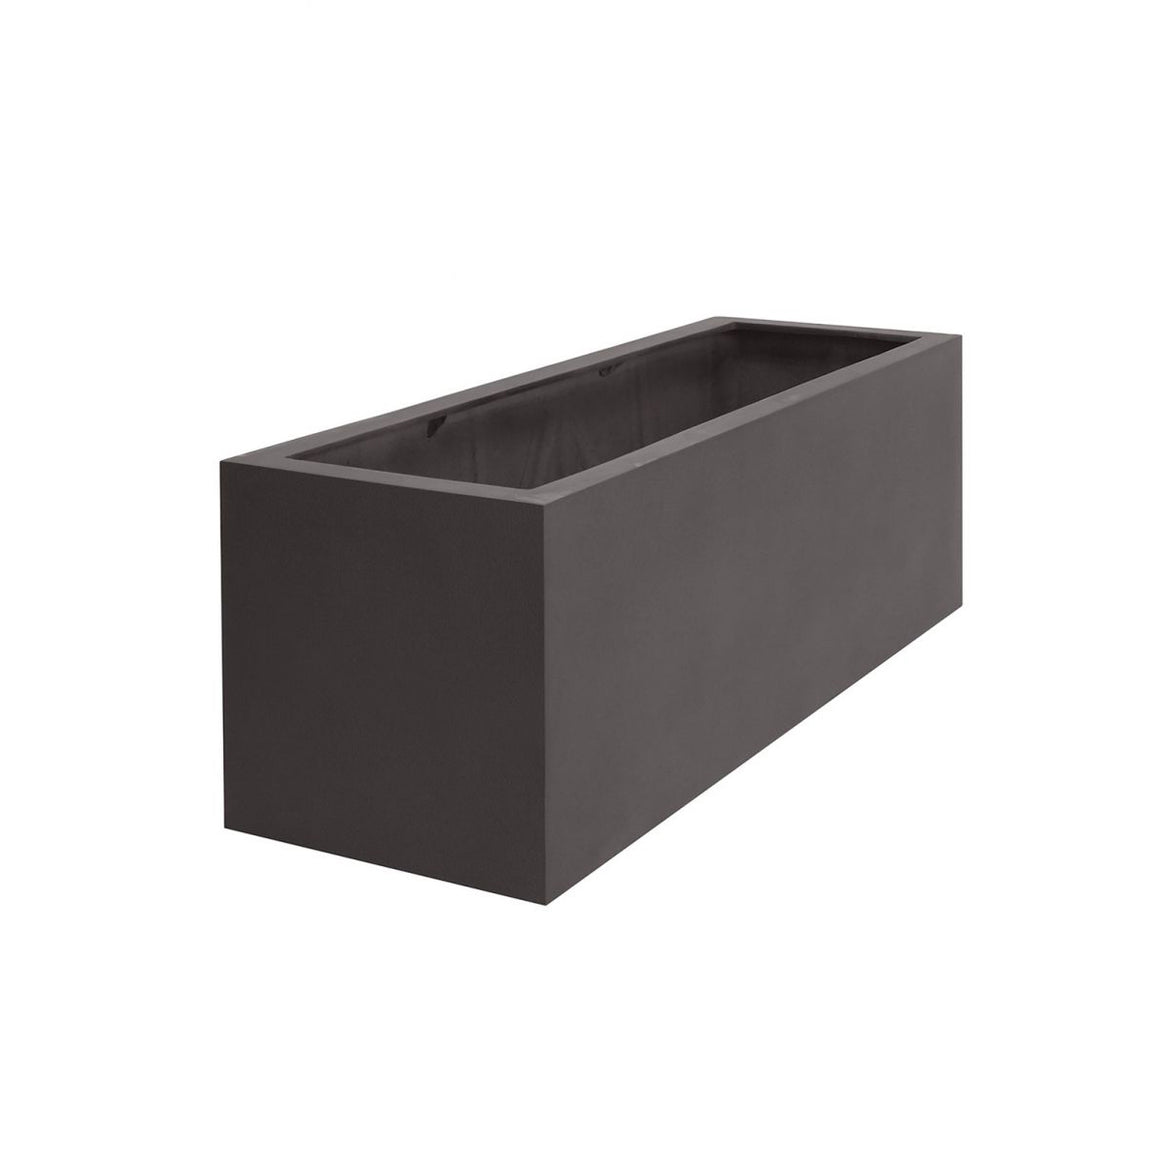 Tall MDF Trough Planter